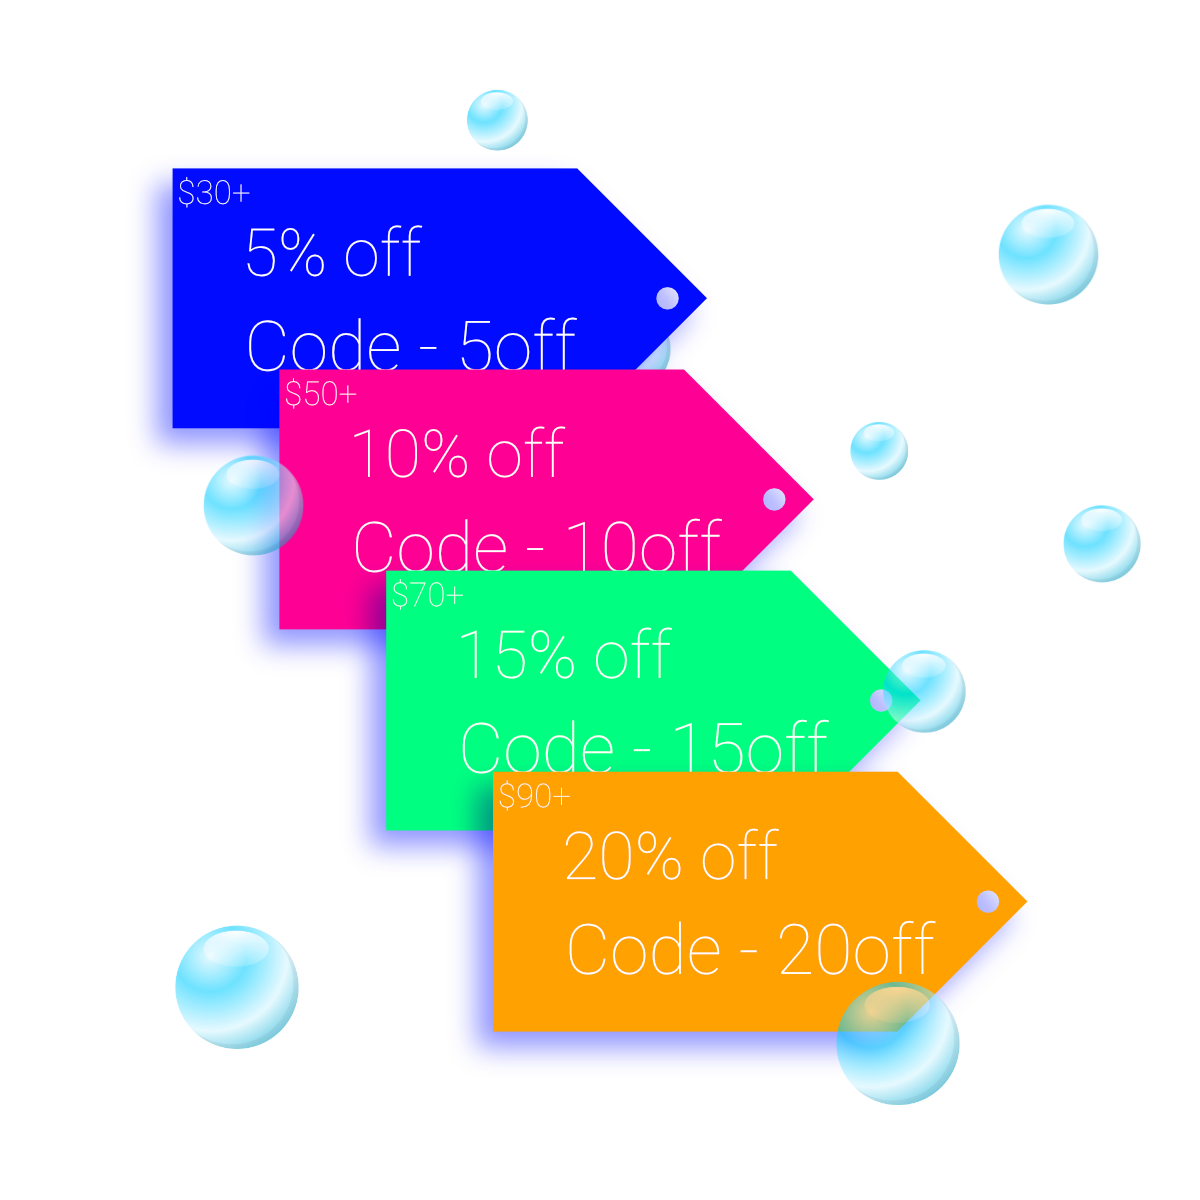 coupon-page-3